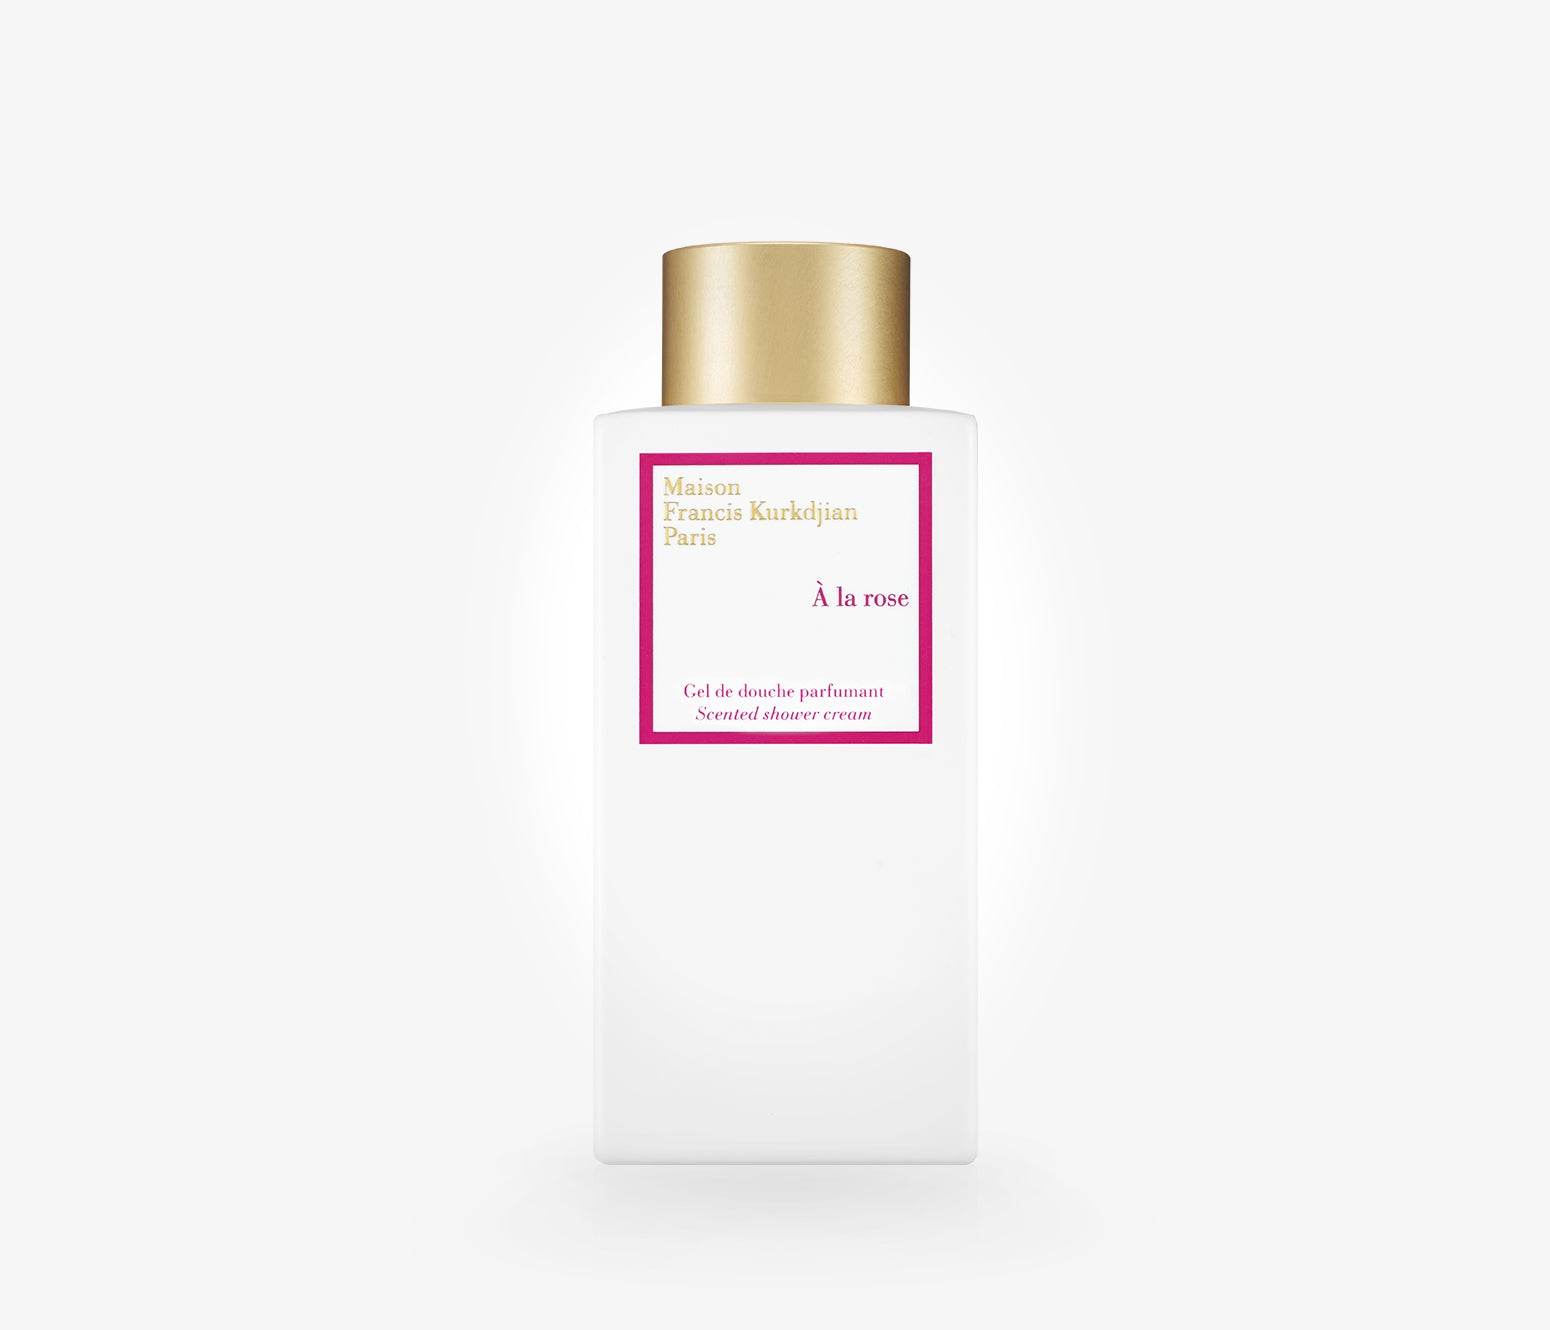 Maison Francis Kurkdjian - À La Rose Shower Cream - 250ml - GKR001 - product image - Body Wash - Les Senteurs